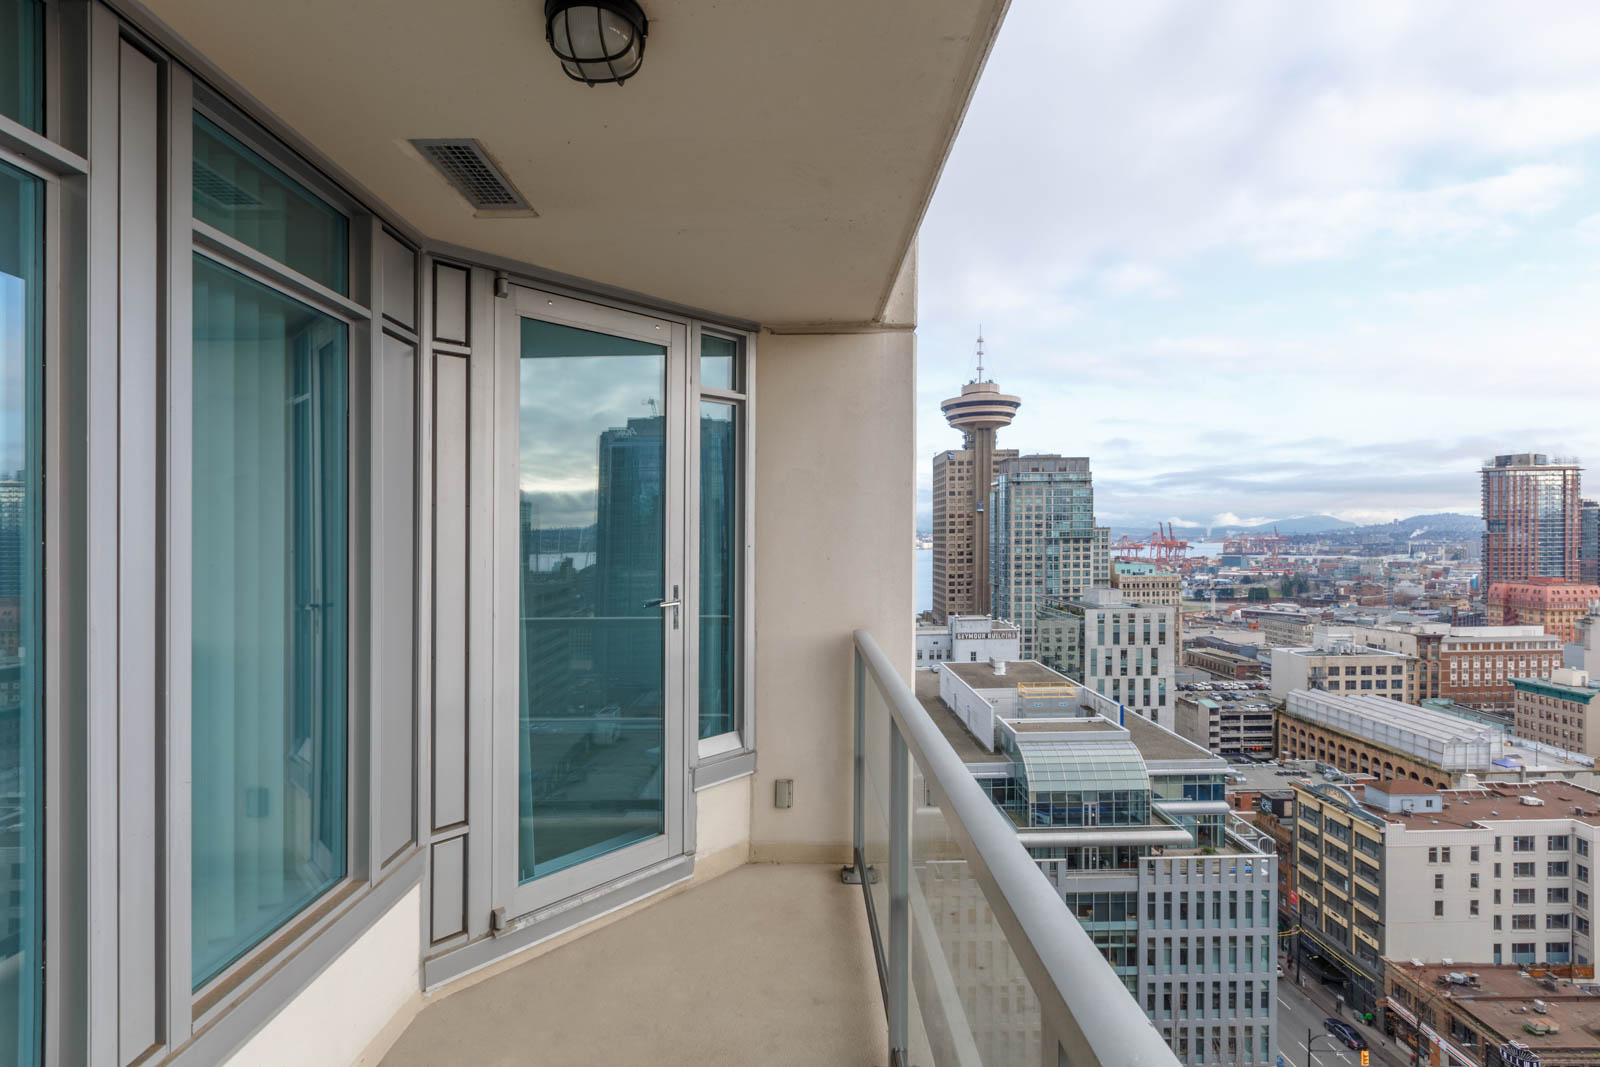 A large balcony on the 20th floor with views of Harbour Centre